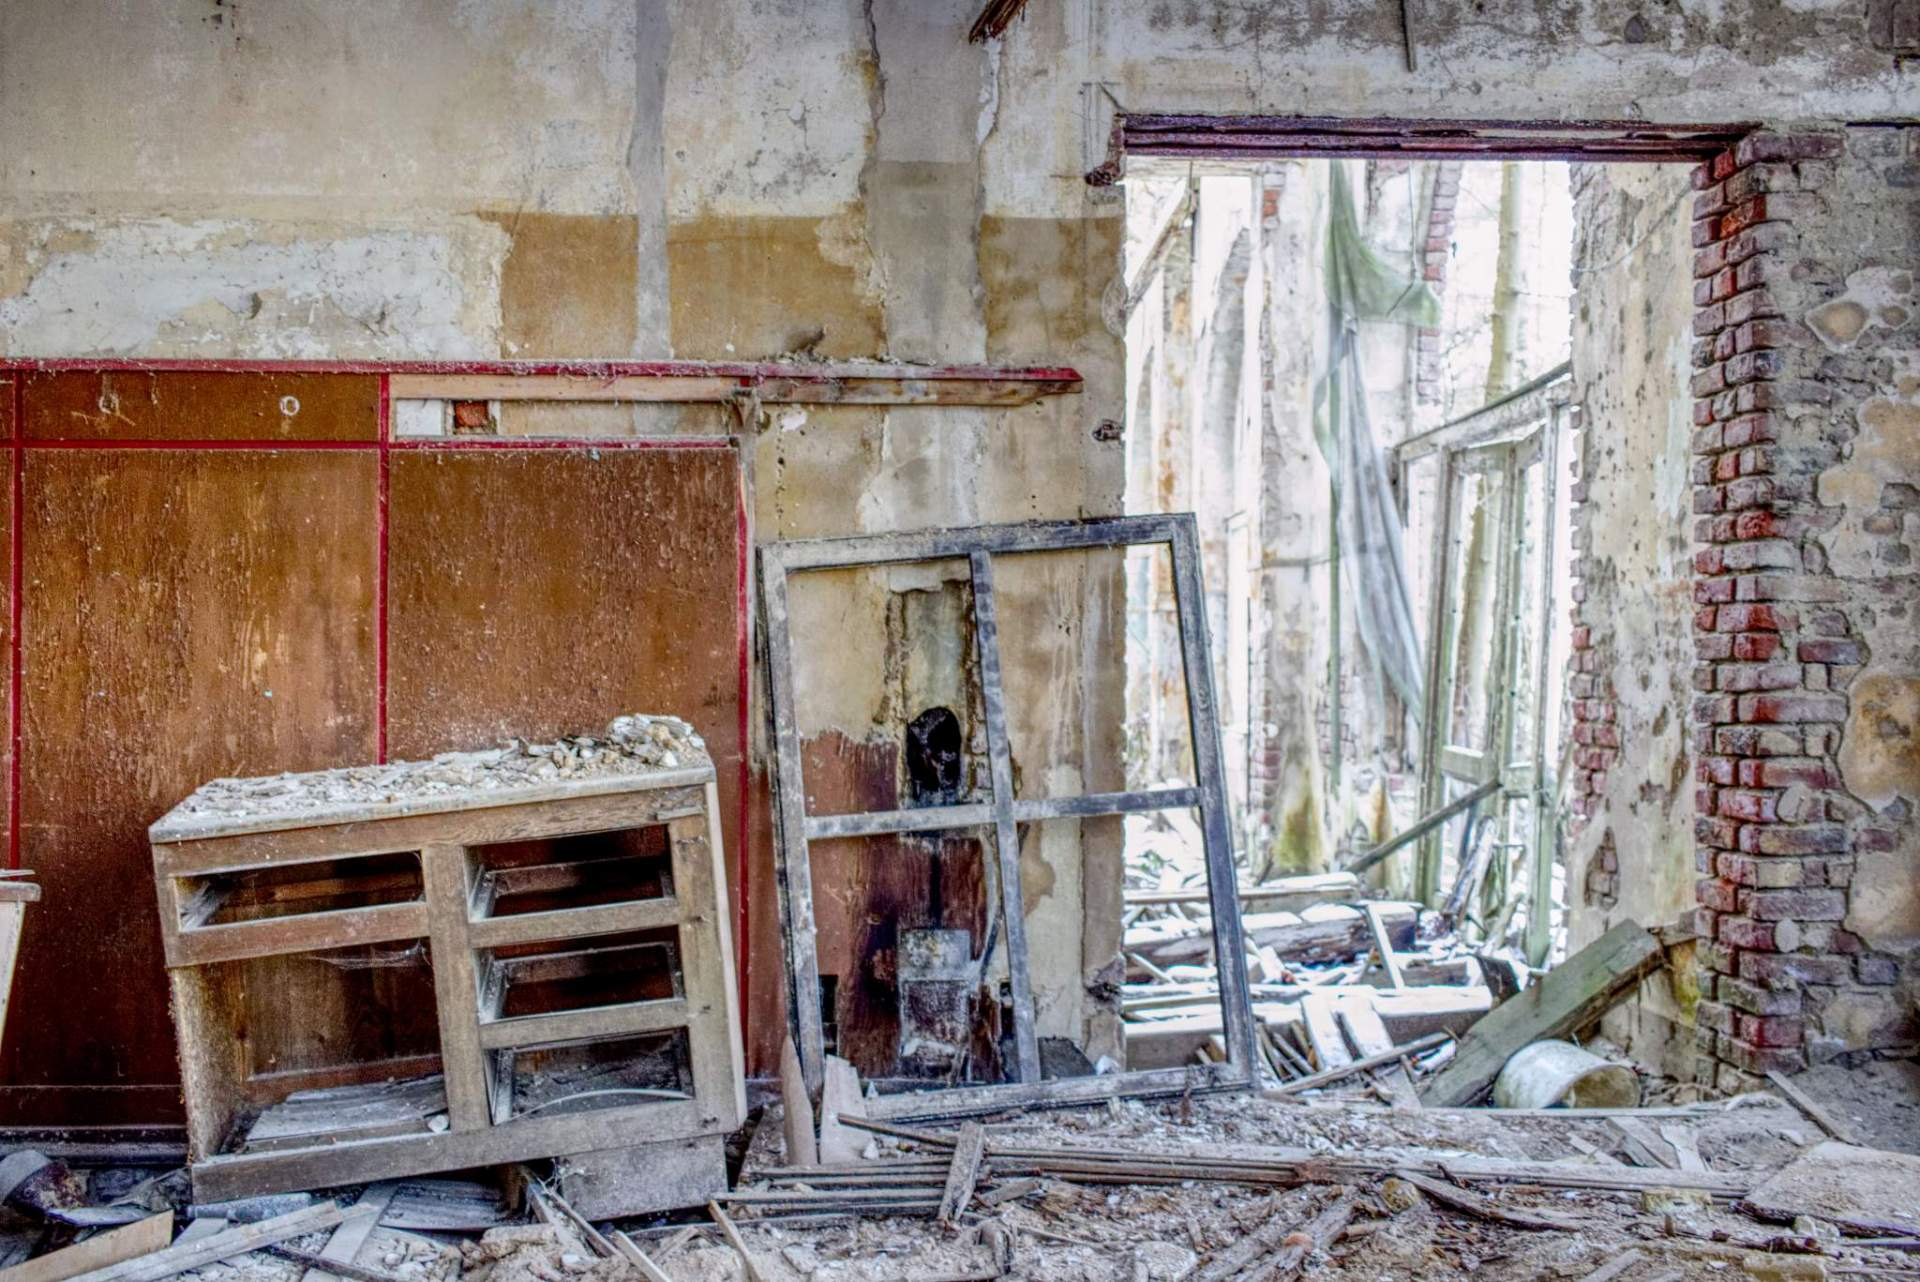 Lostplace_HDR